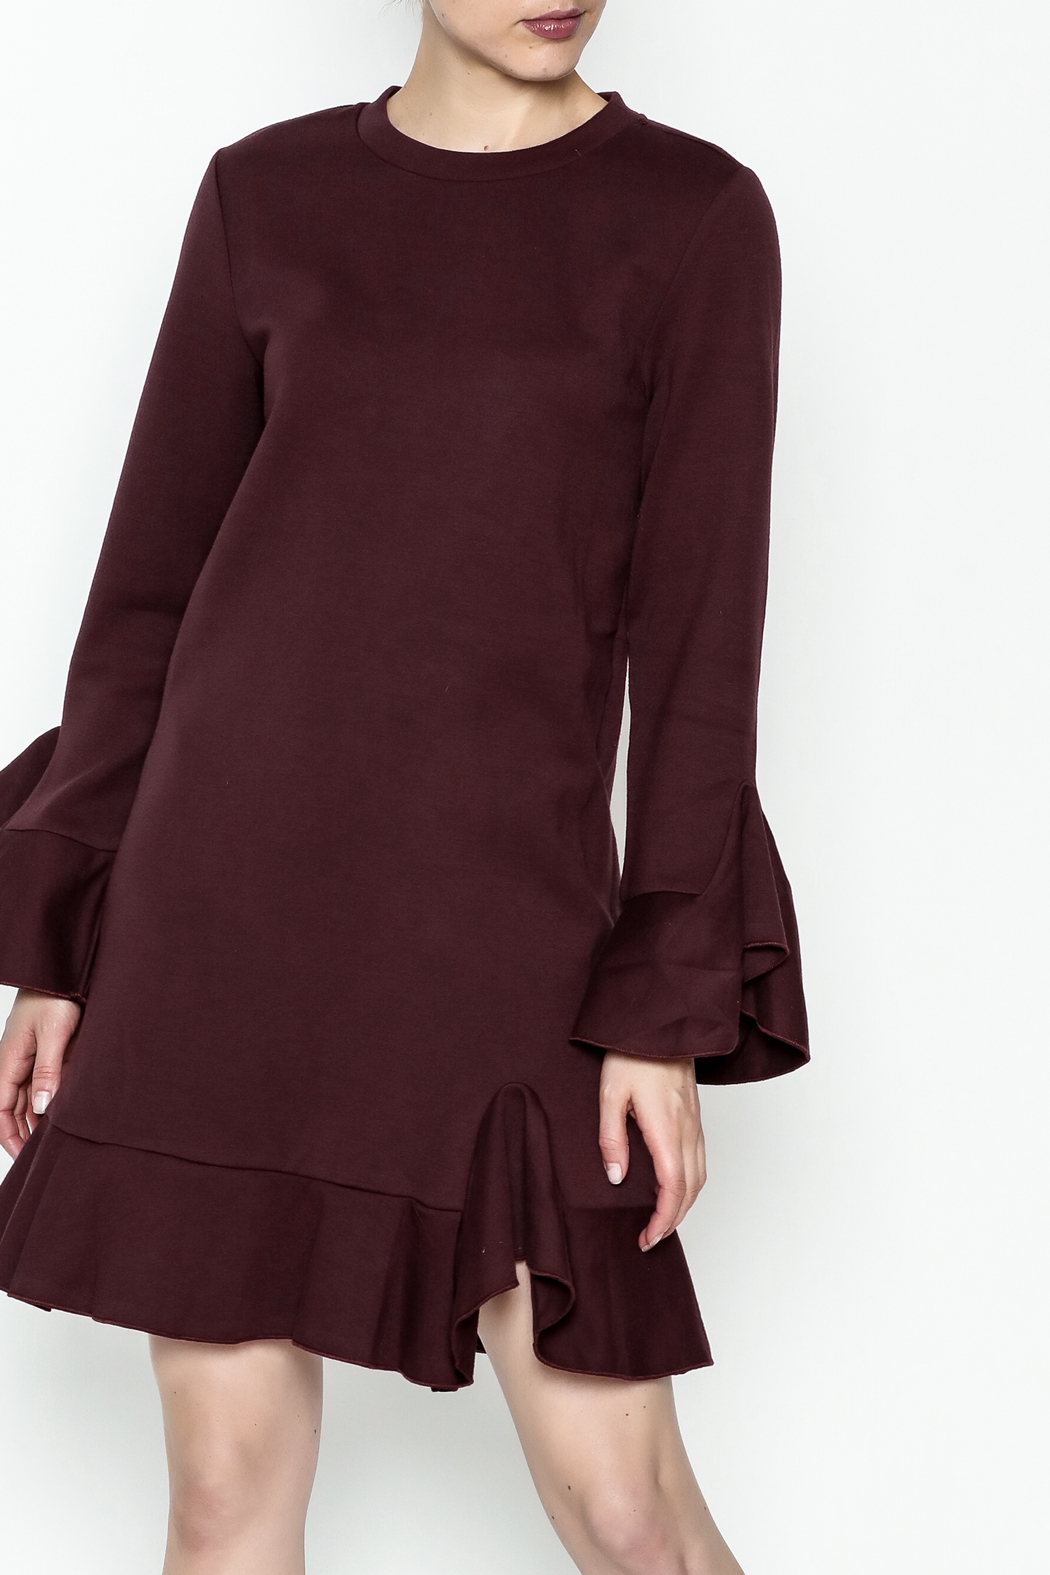 Sugar Lips Ruffle Sleeve Dress - Front Cropped Image